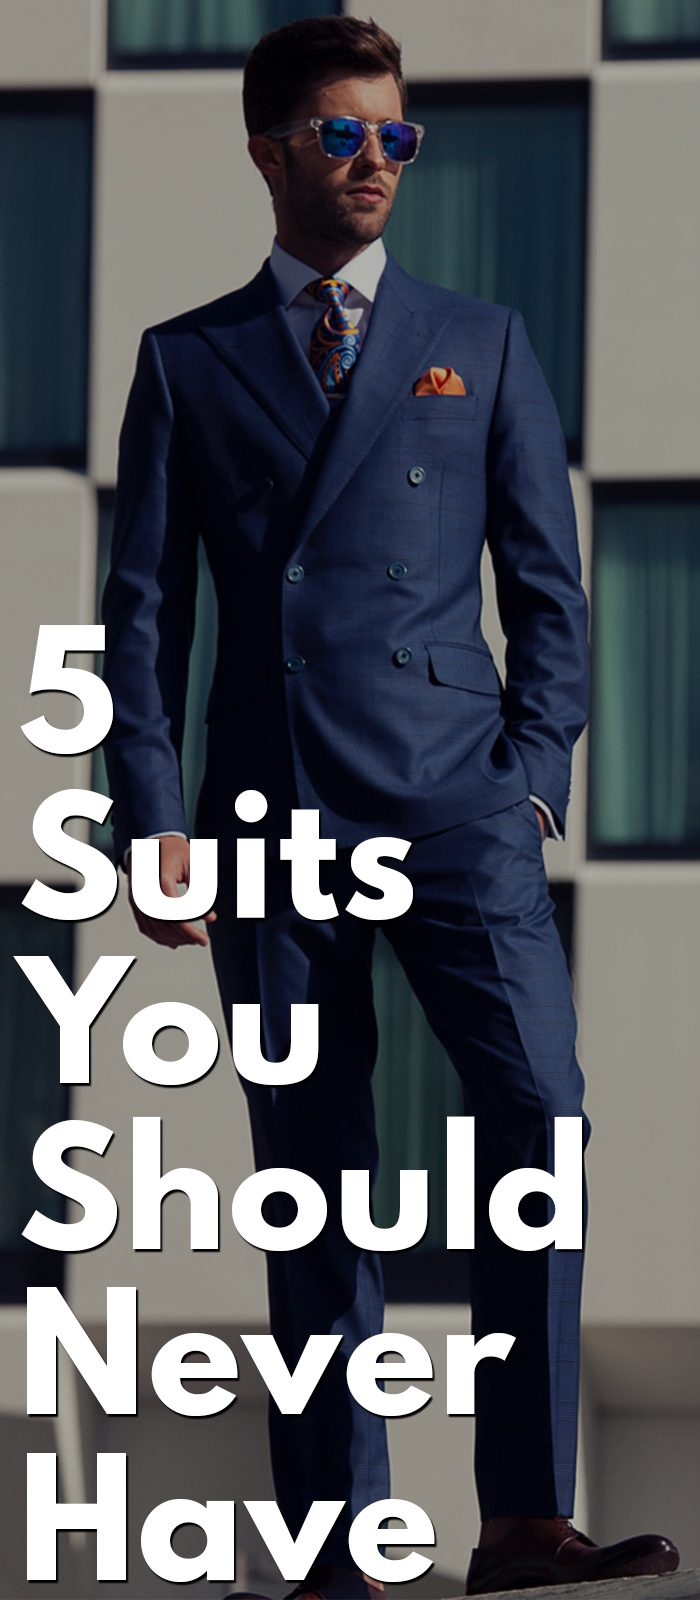 5 Suits You Should Never Have